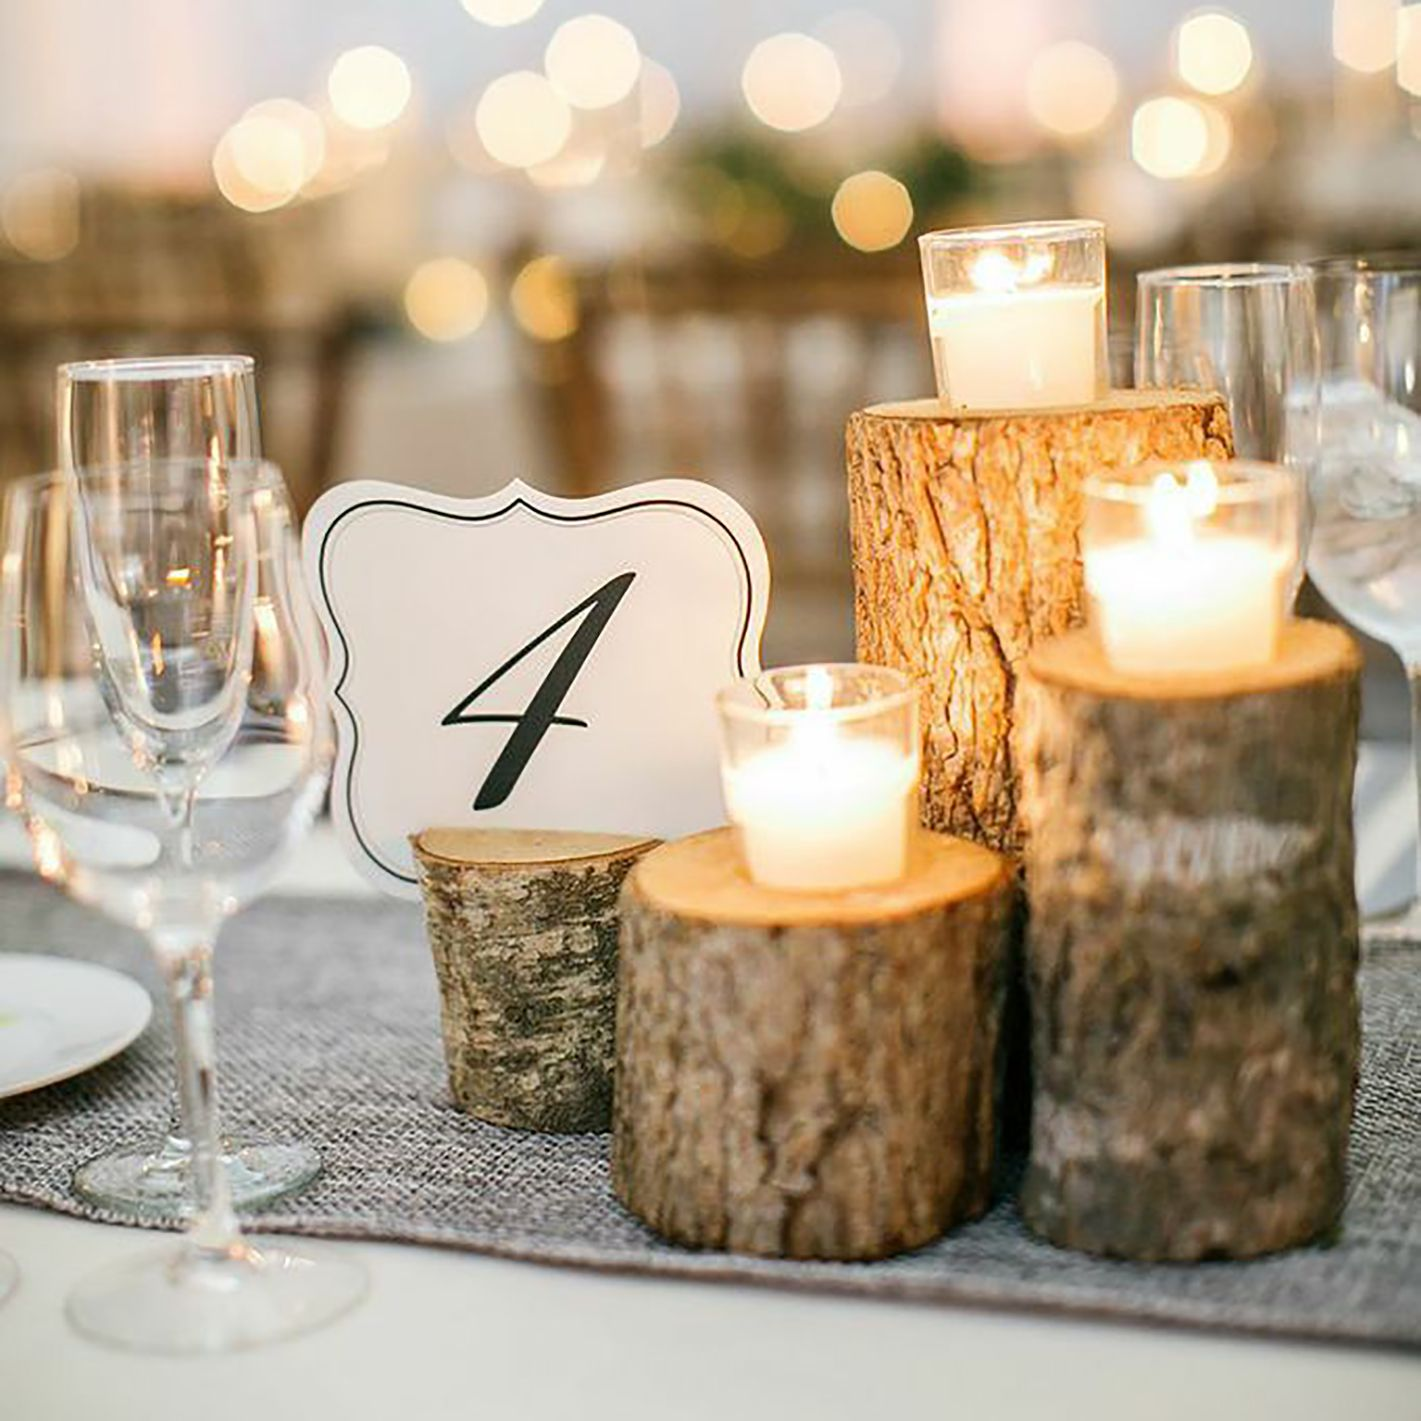 Branch Votives | Winter wedding decorations, Winter wonderland wedding, Wedding  decorations